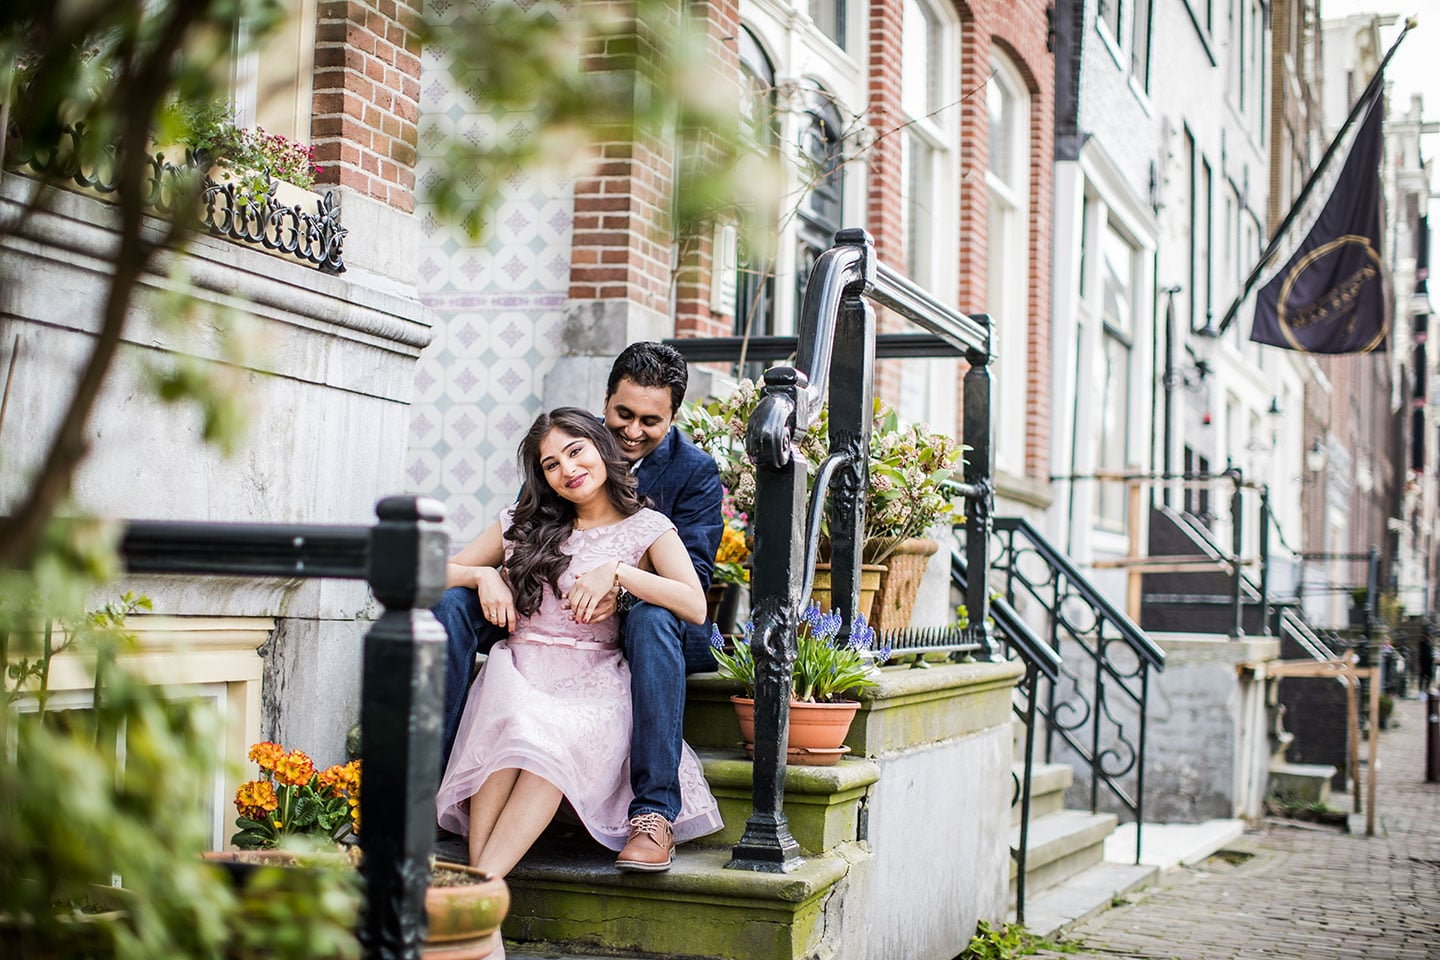 Amsterdam Holland prewedding photoshoot